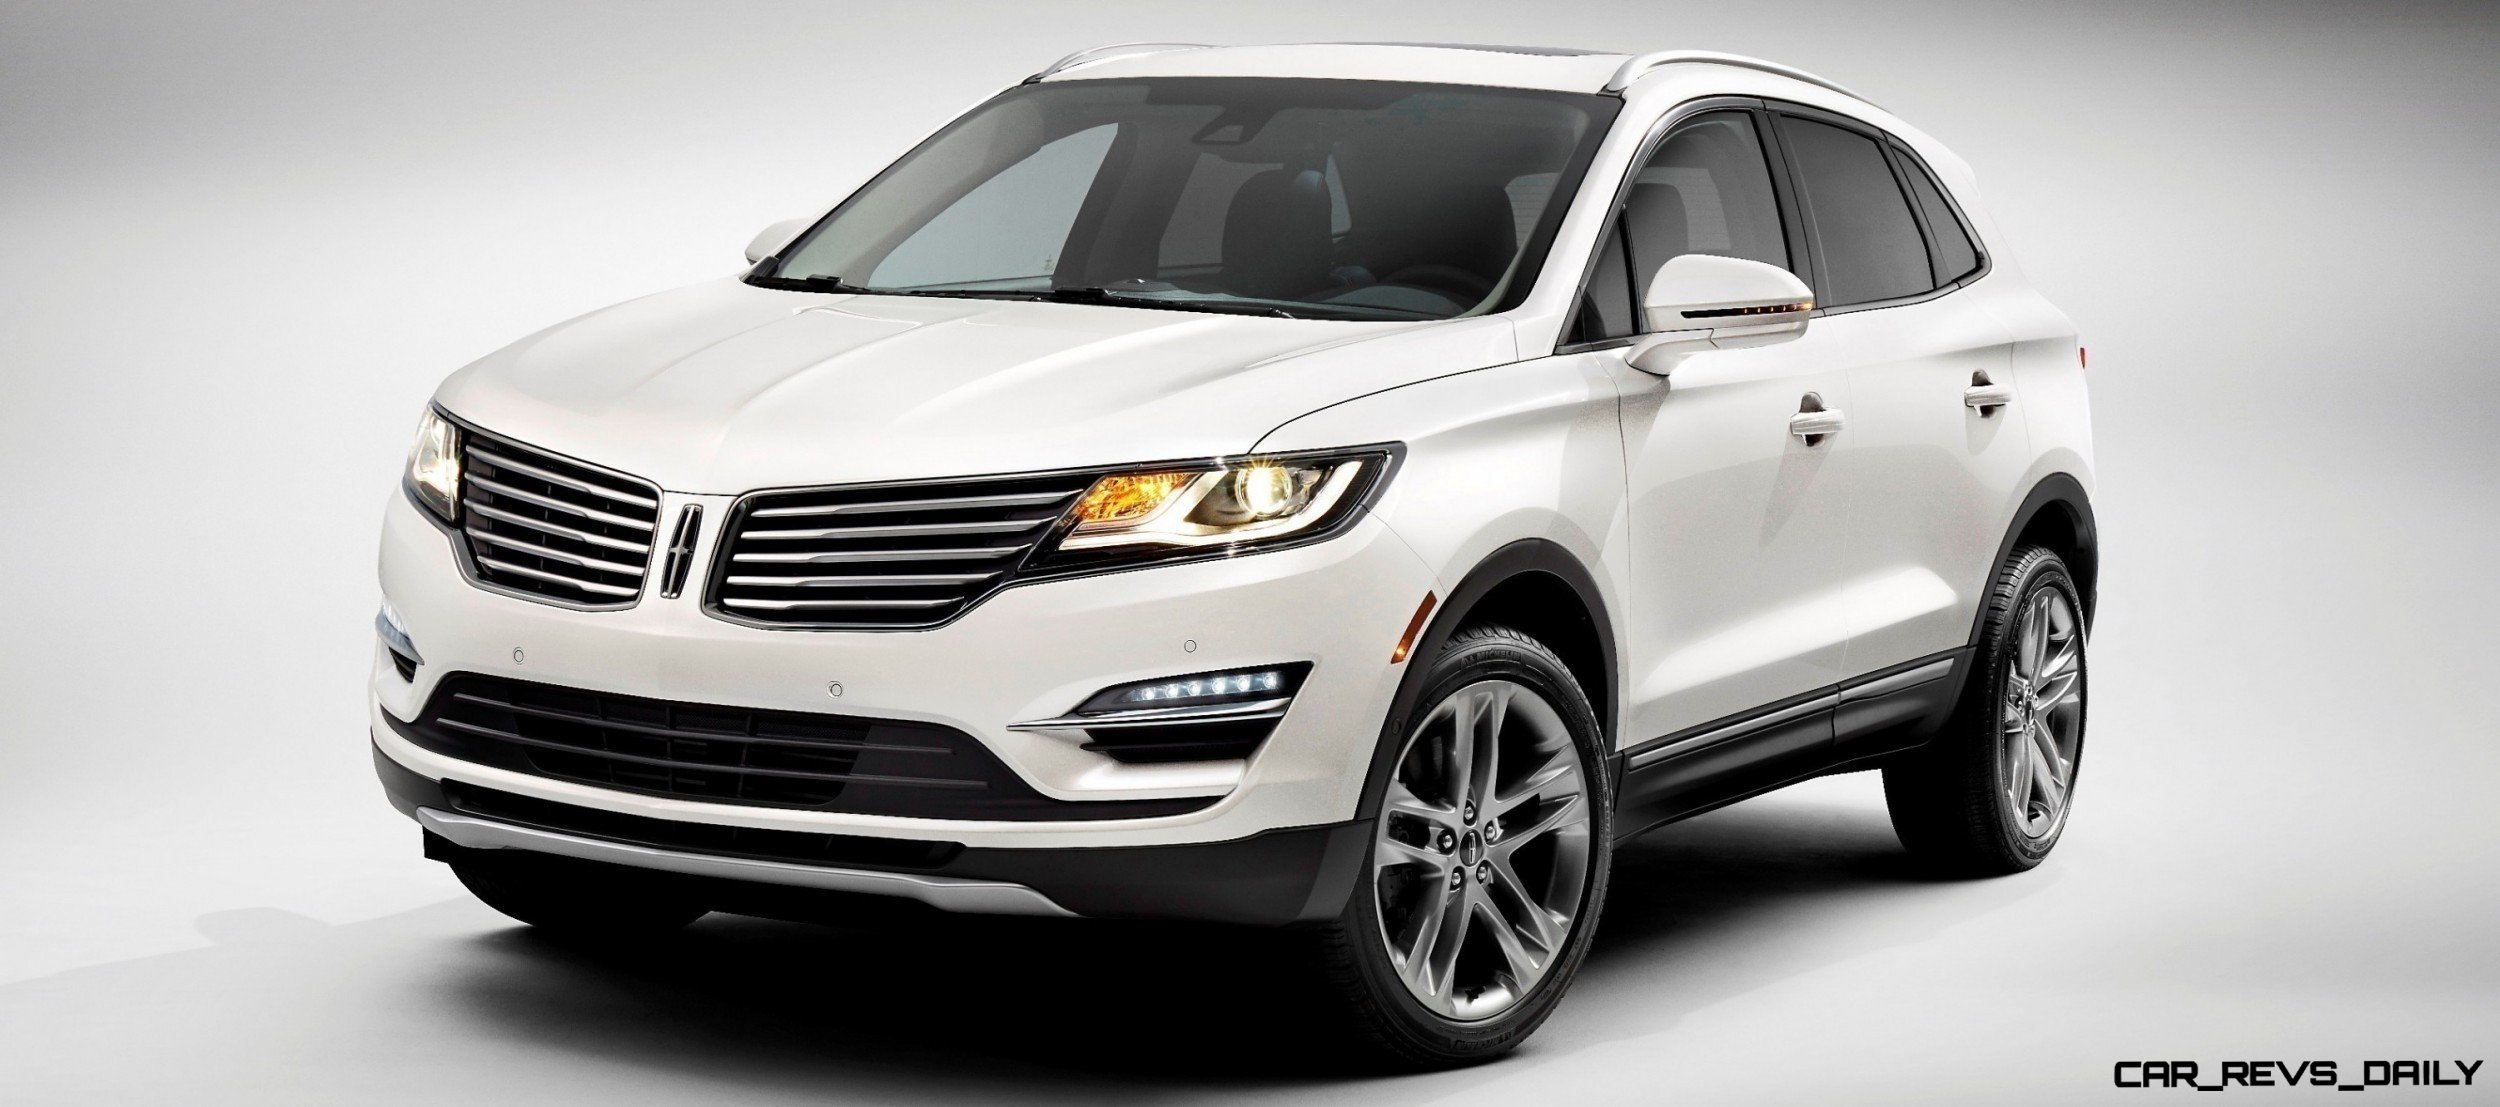 2015 lincoln mkc crossover a cool mix of infiniti and audi from 34 000 car revs. Black Bedroom Furniture Sets. Home Design Ideas